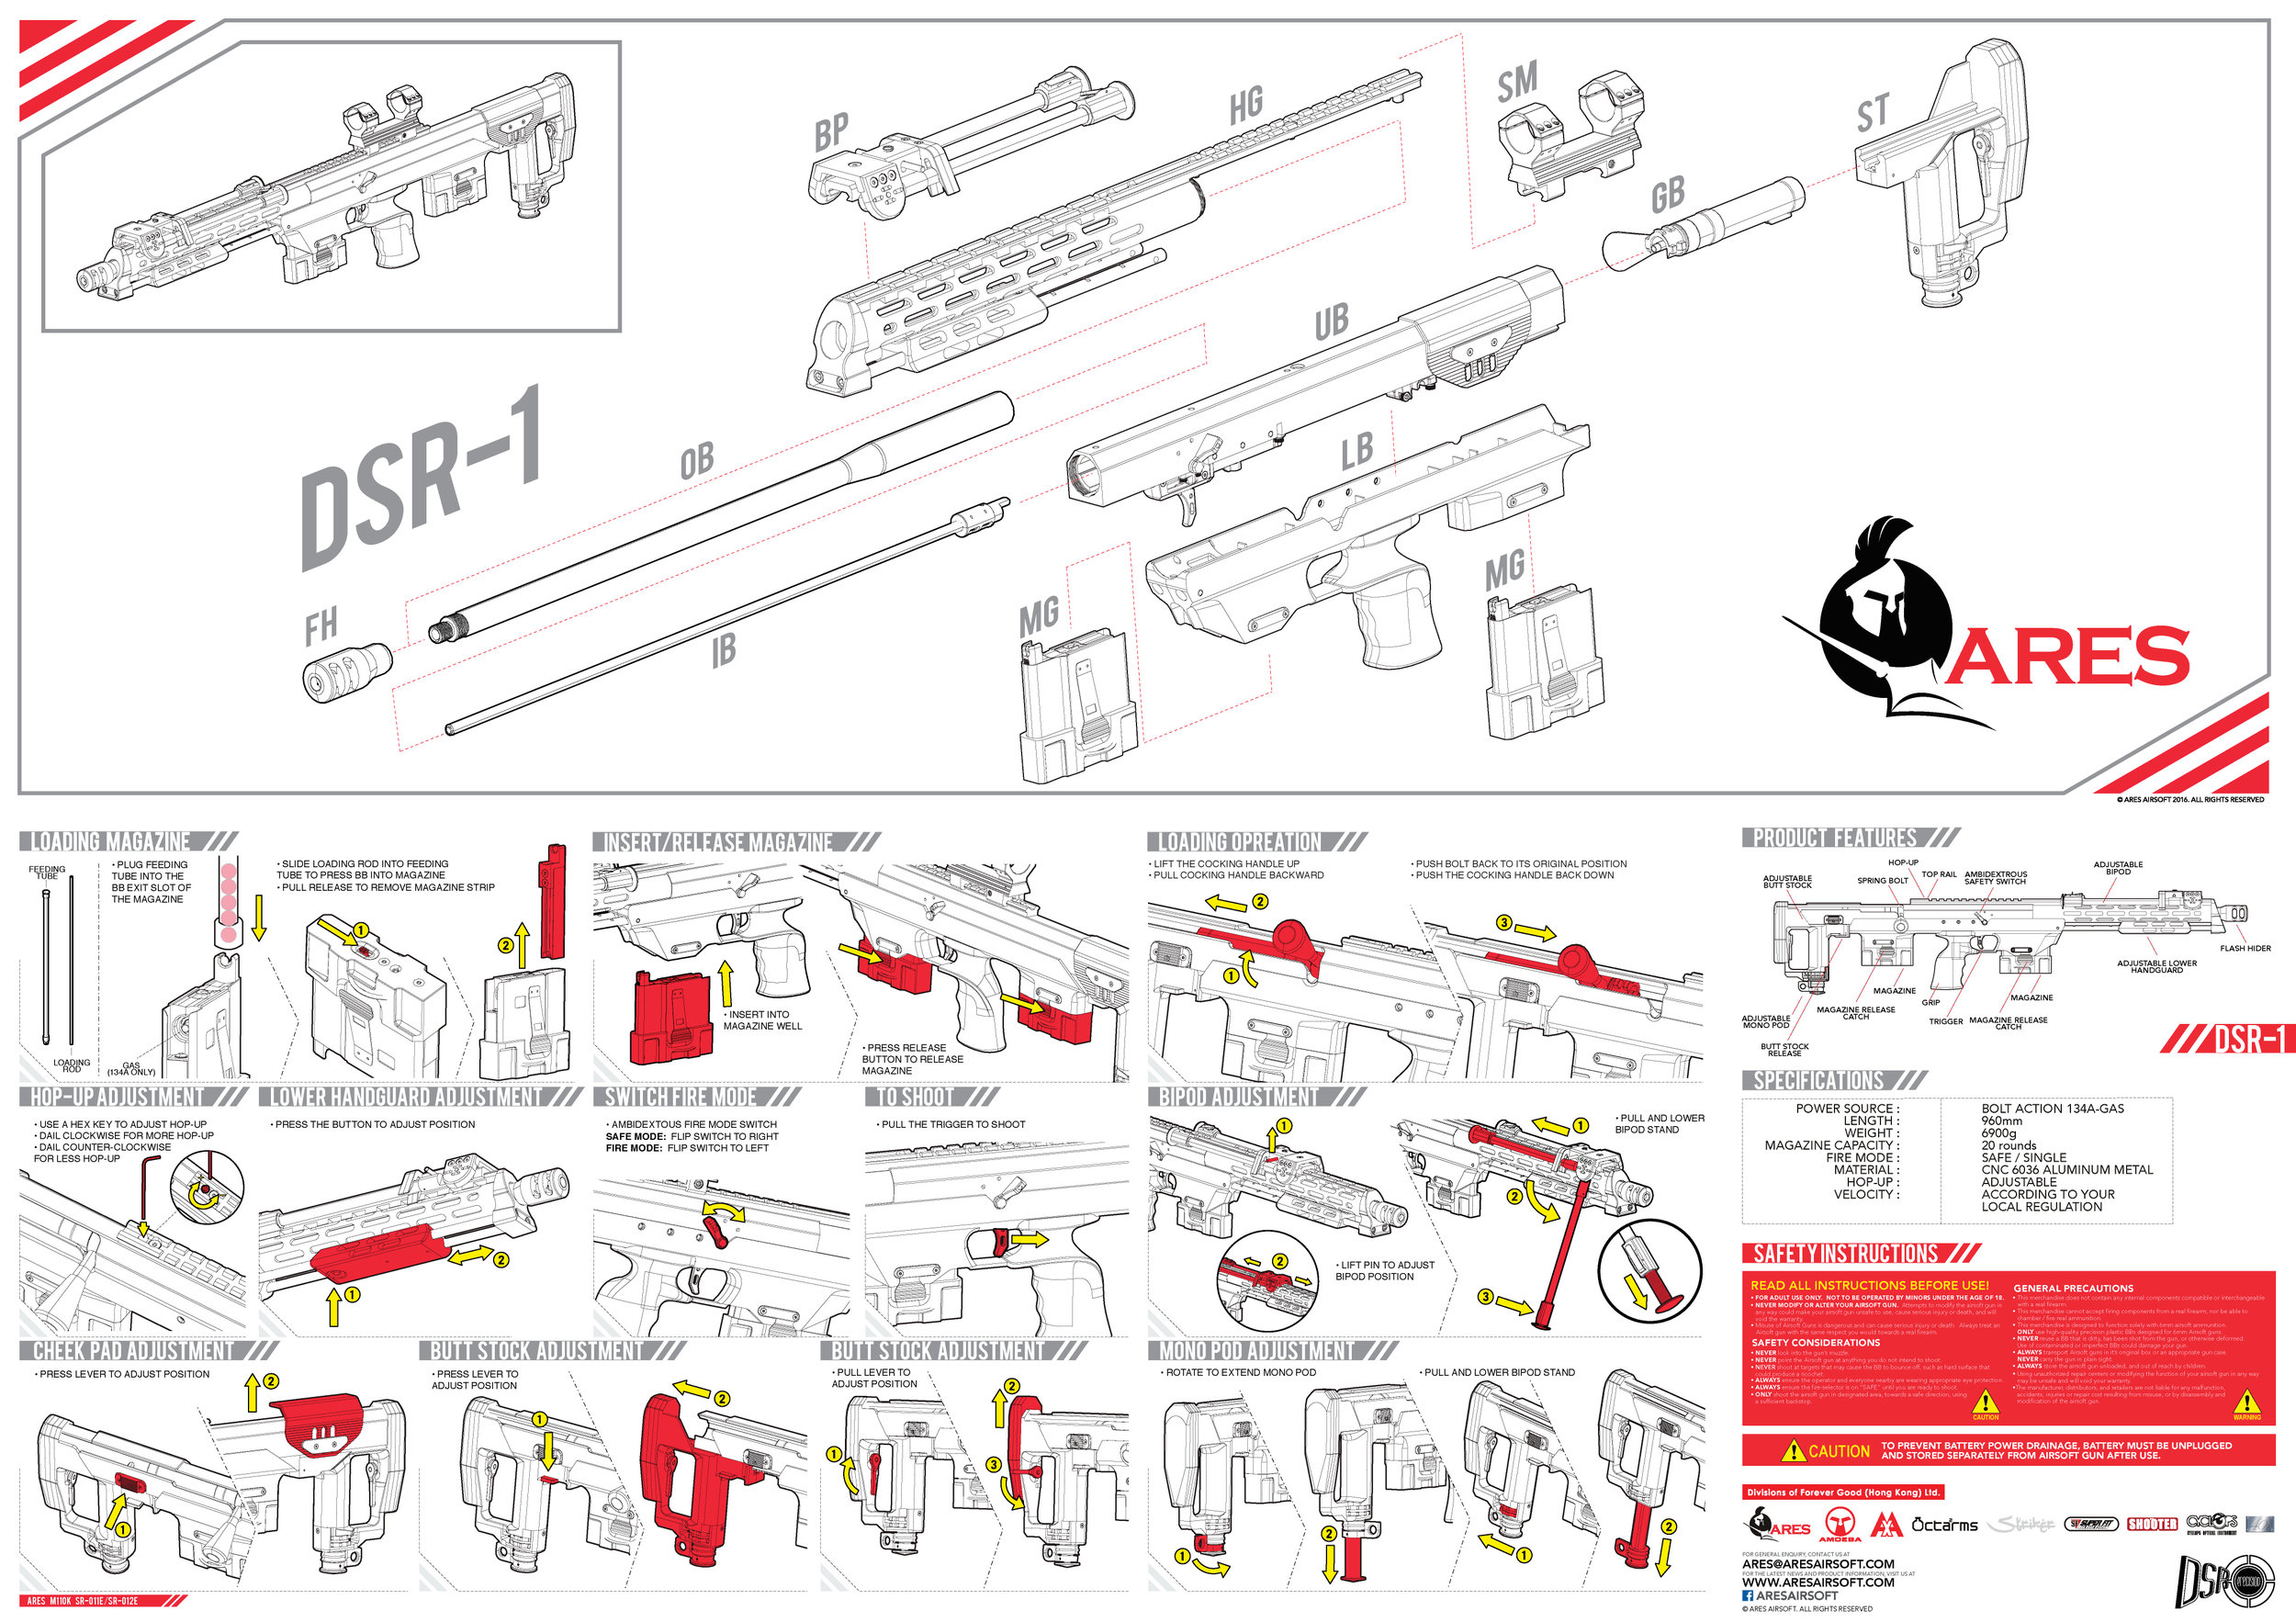 DSR instruction manual FULL